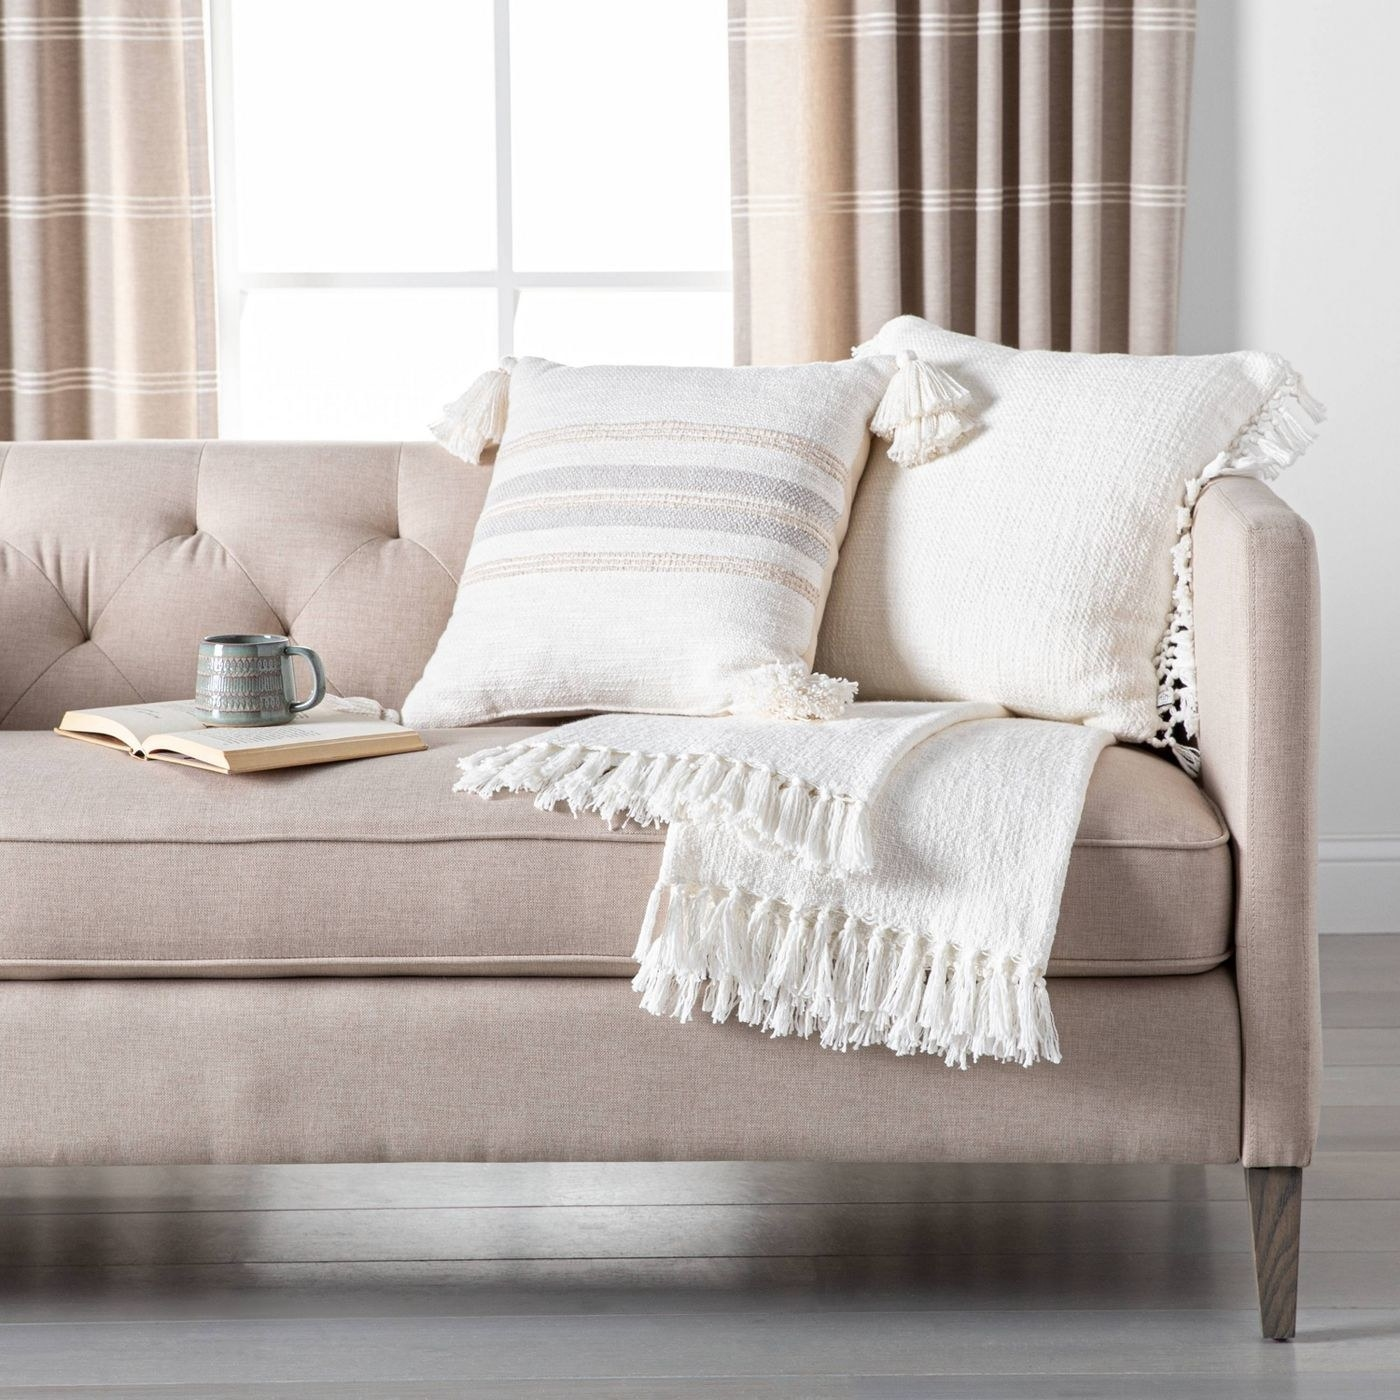 A white throw blanket on a couch